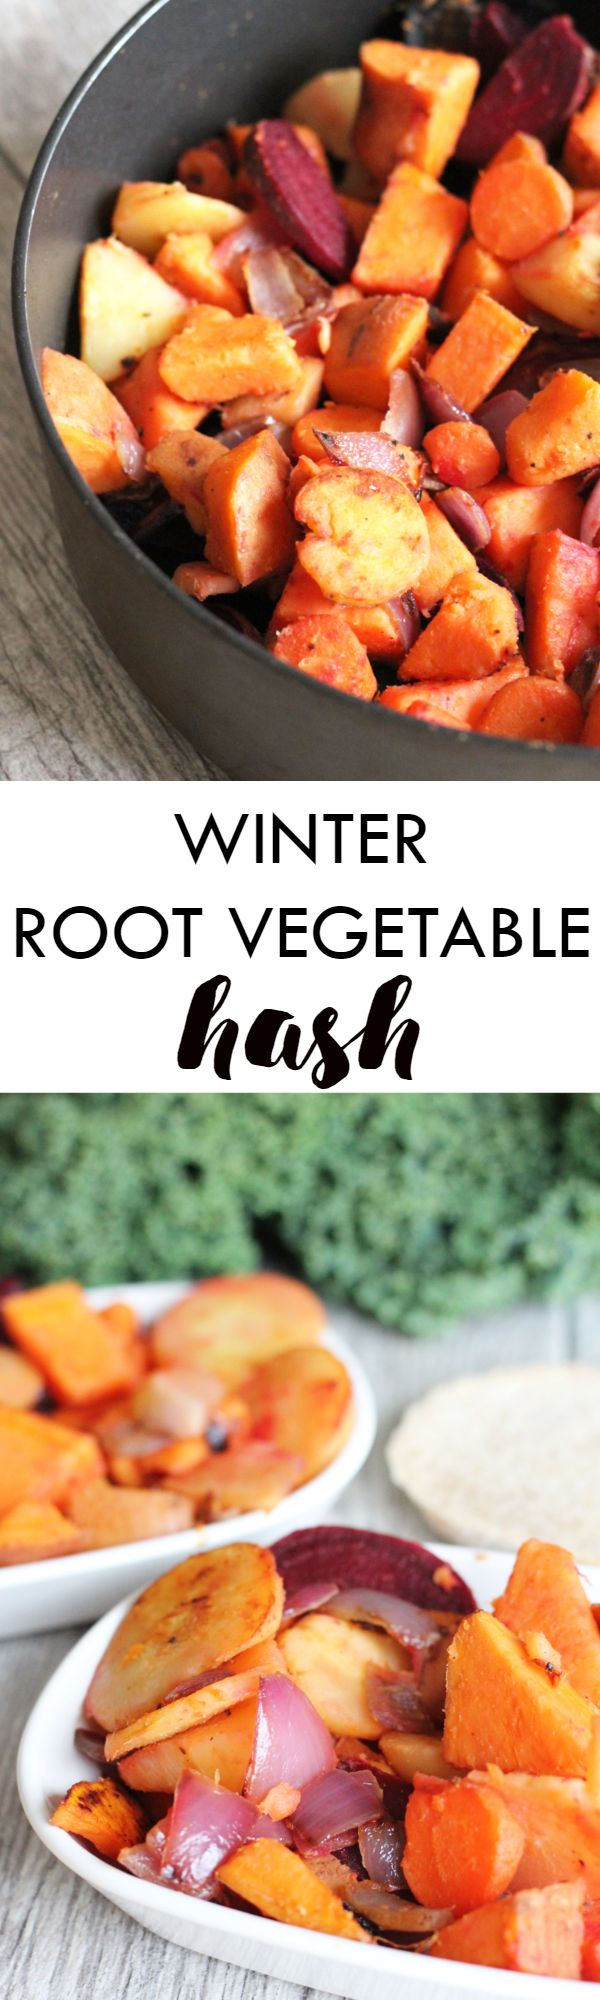 This Winter Root Vegetable Hash is the perfect whole foods start to your day! Made with natural whole foods and packed with nutrients, this is the perfect kick start to your day // dairy free, gluten free, paleo, vegan, vegetarian, ready in under 30 minut